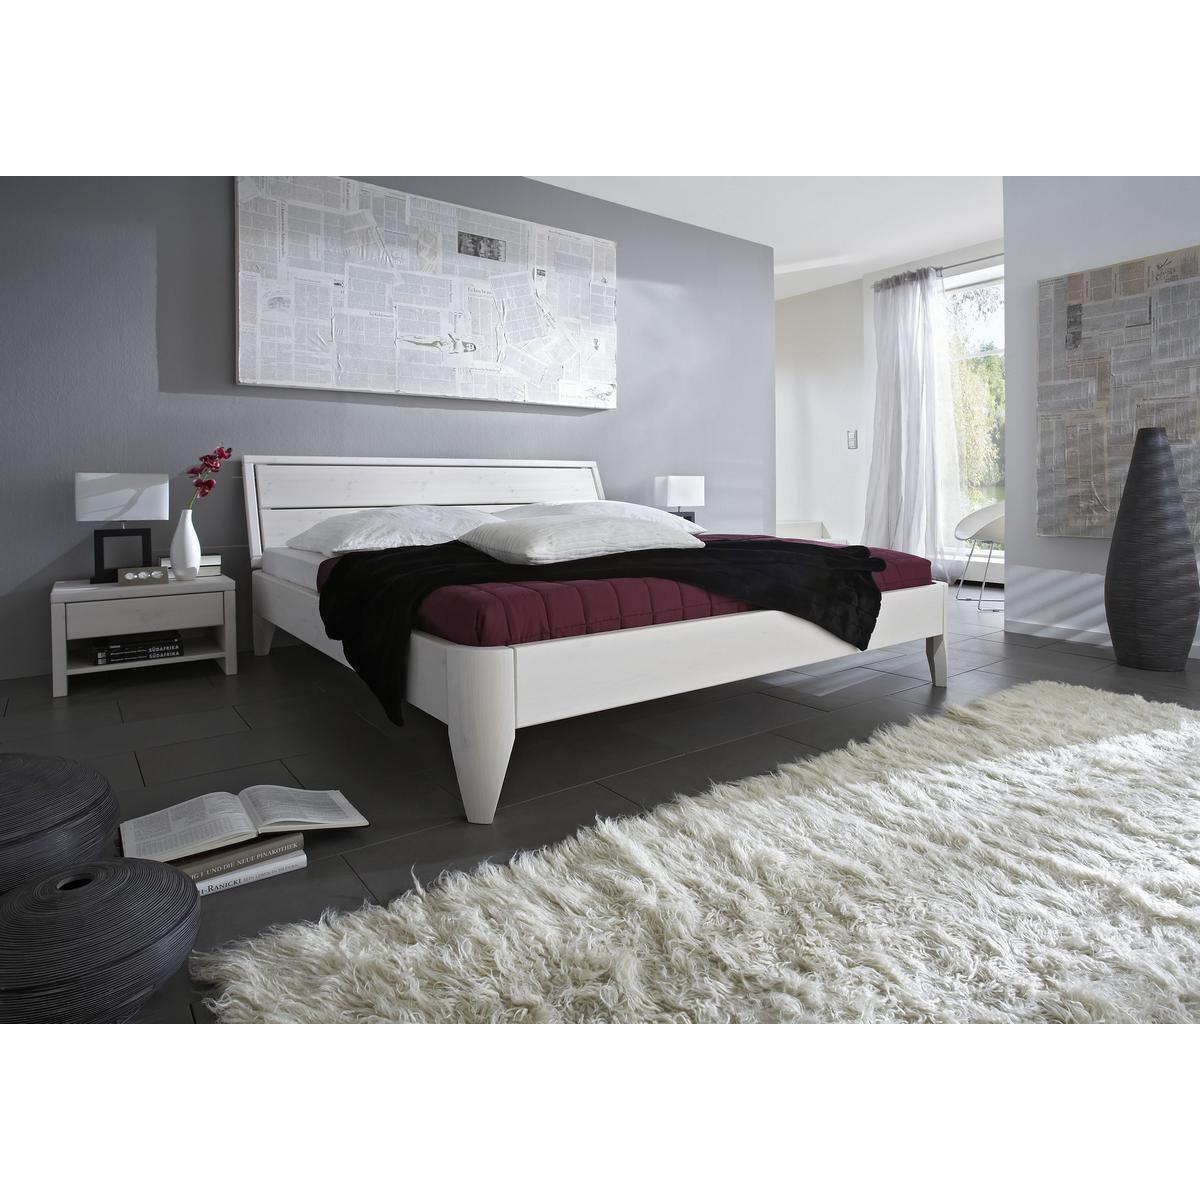 massivholz bett 200x200 easy sleep kiefer massiv wei lackiert 9420 72 0. Black Bedroom Furniture Sets. Home Design Ideas